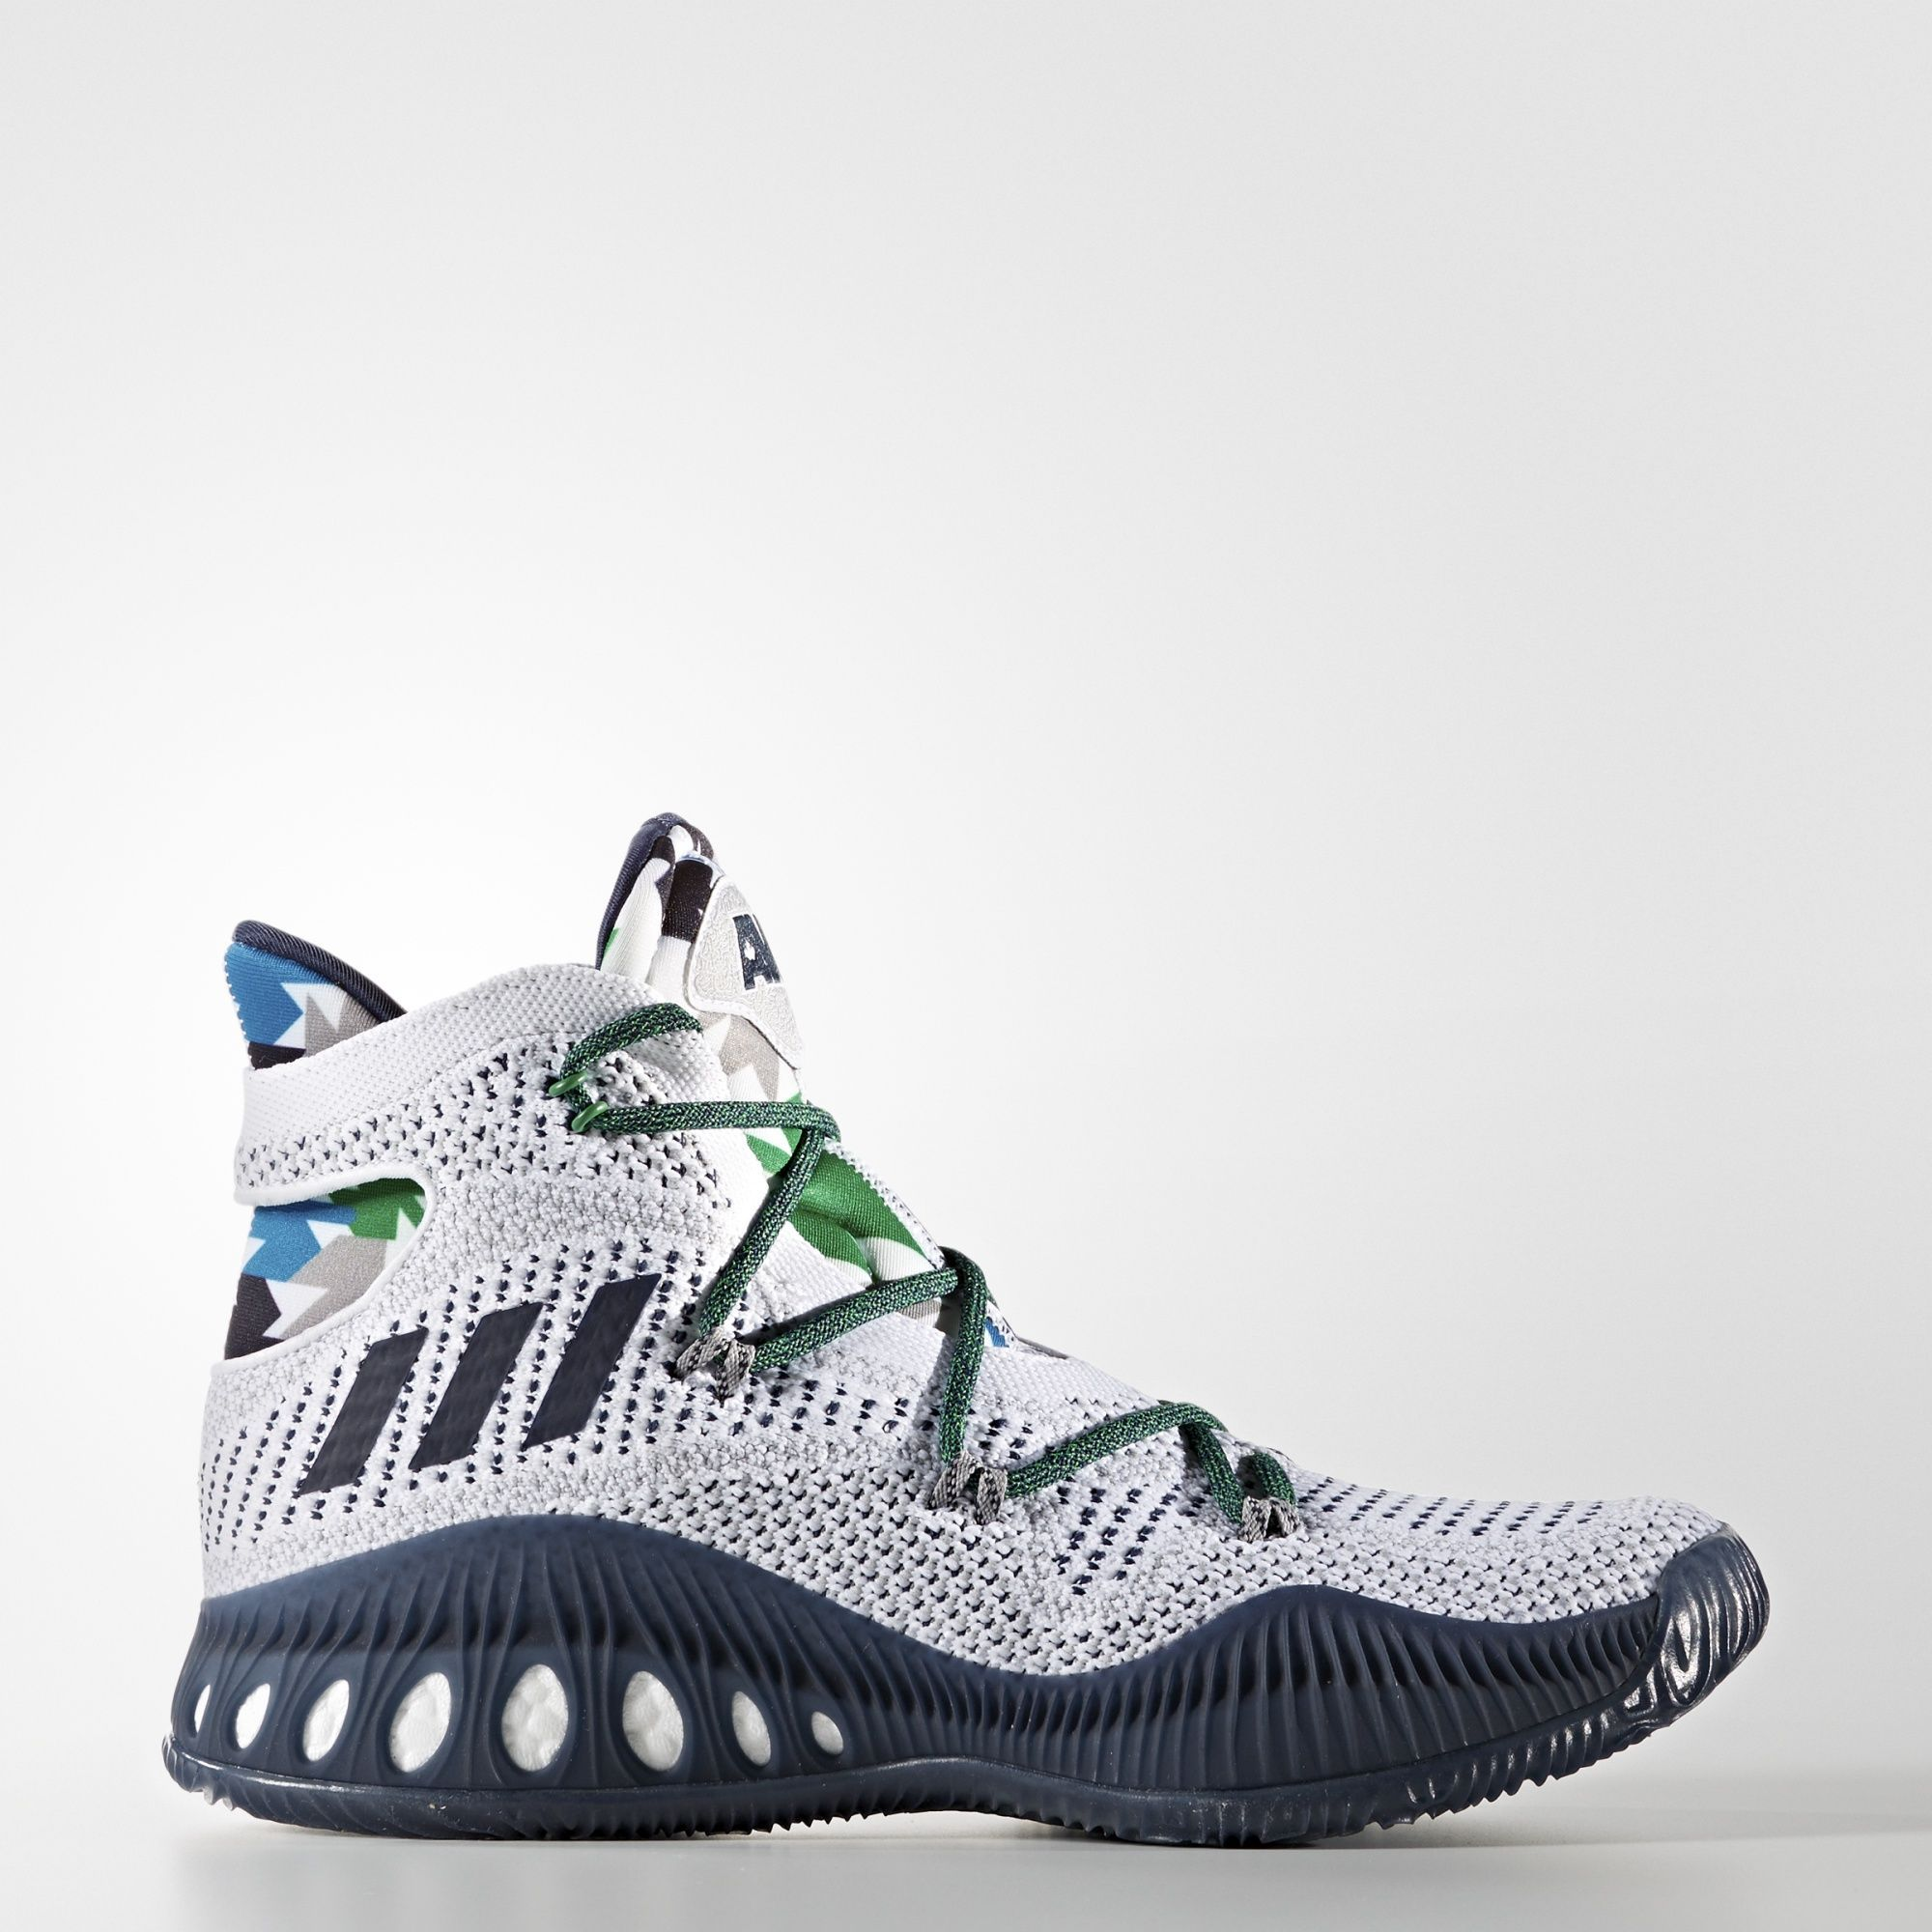 adidas - Crazy Explosive Primeknit Shoes